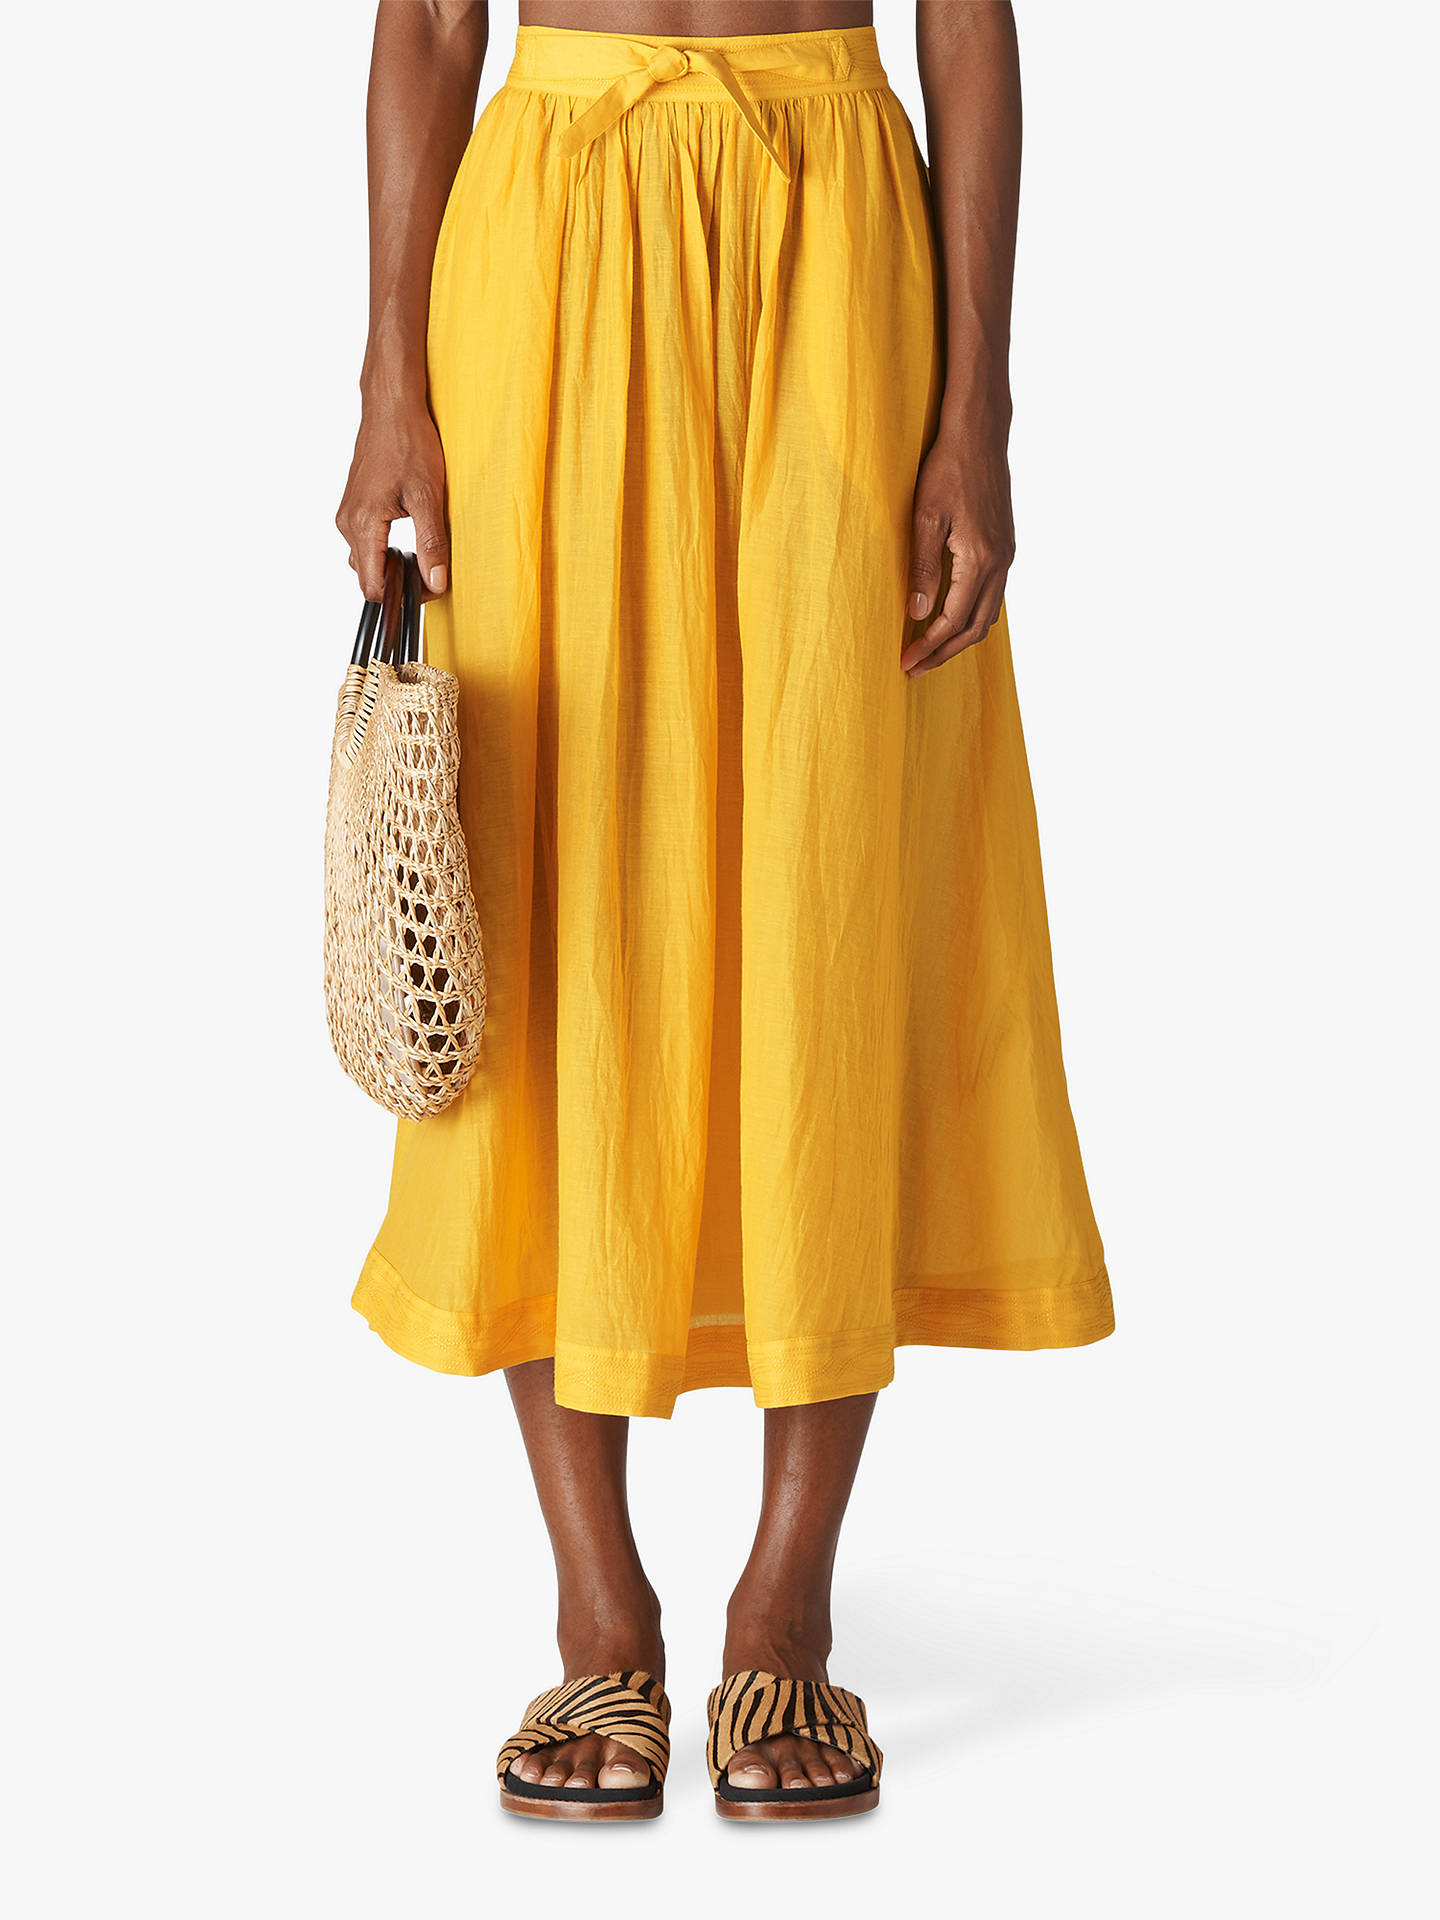 5e97ab16a4 Buy Whistles Voile Beach Full Skirt, Yellow, S Online at johnlewis.com ...